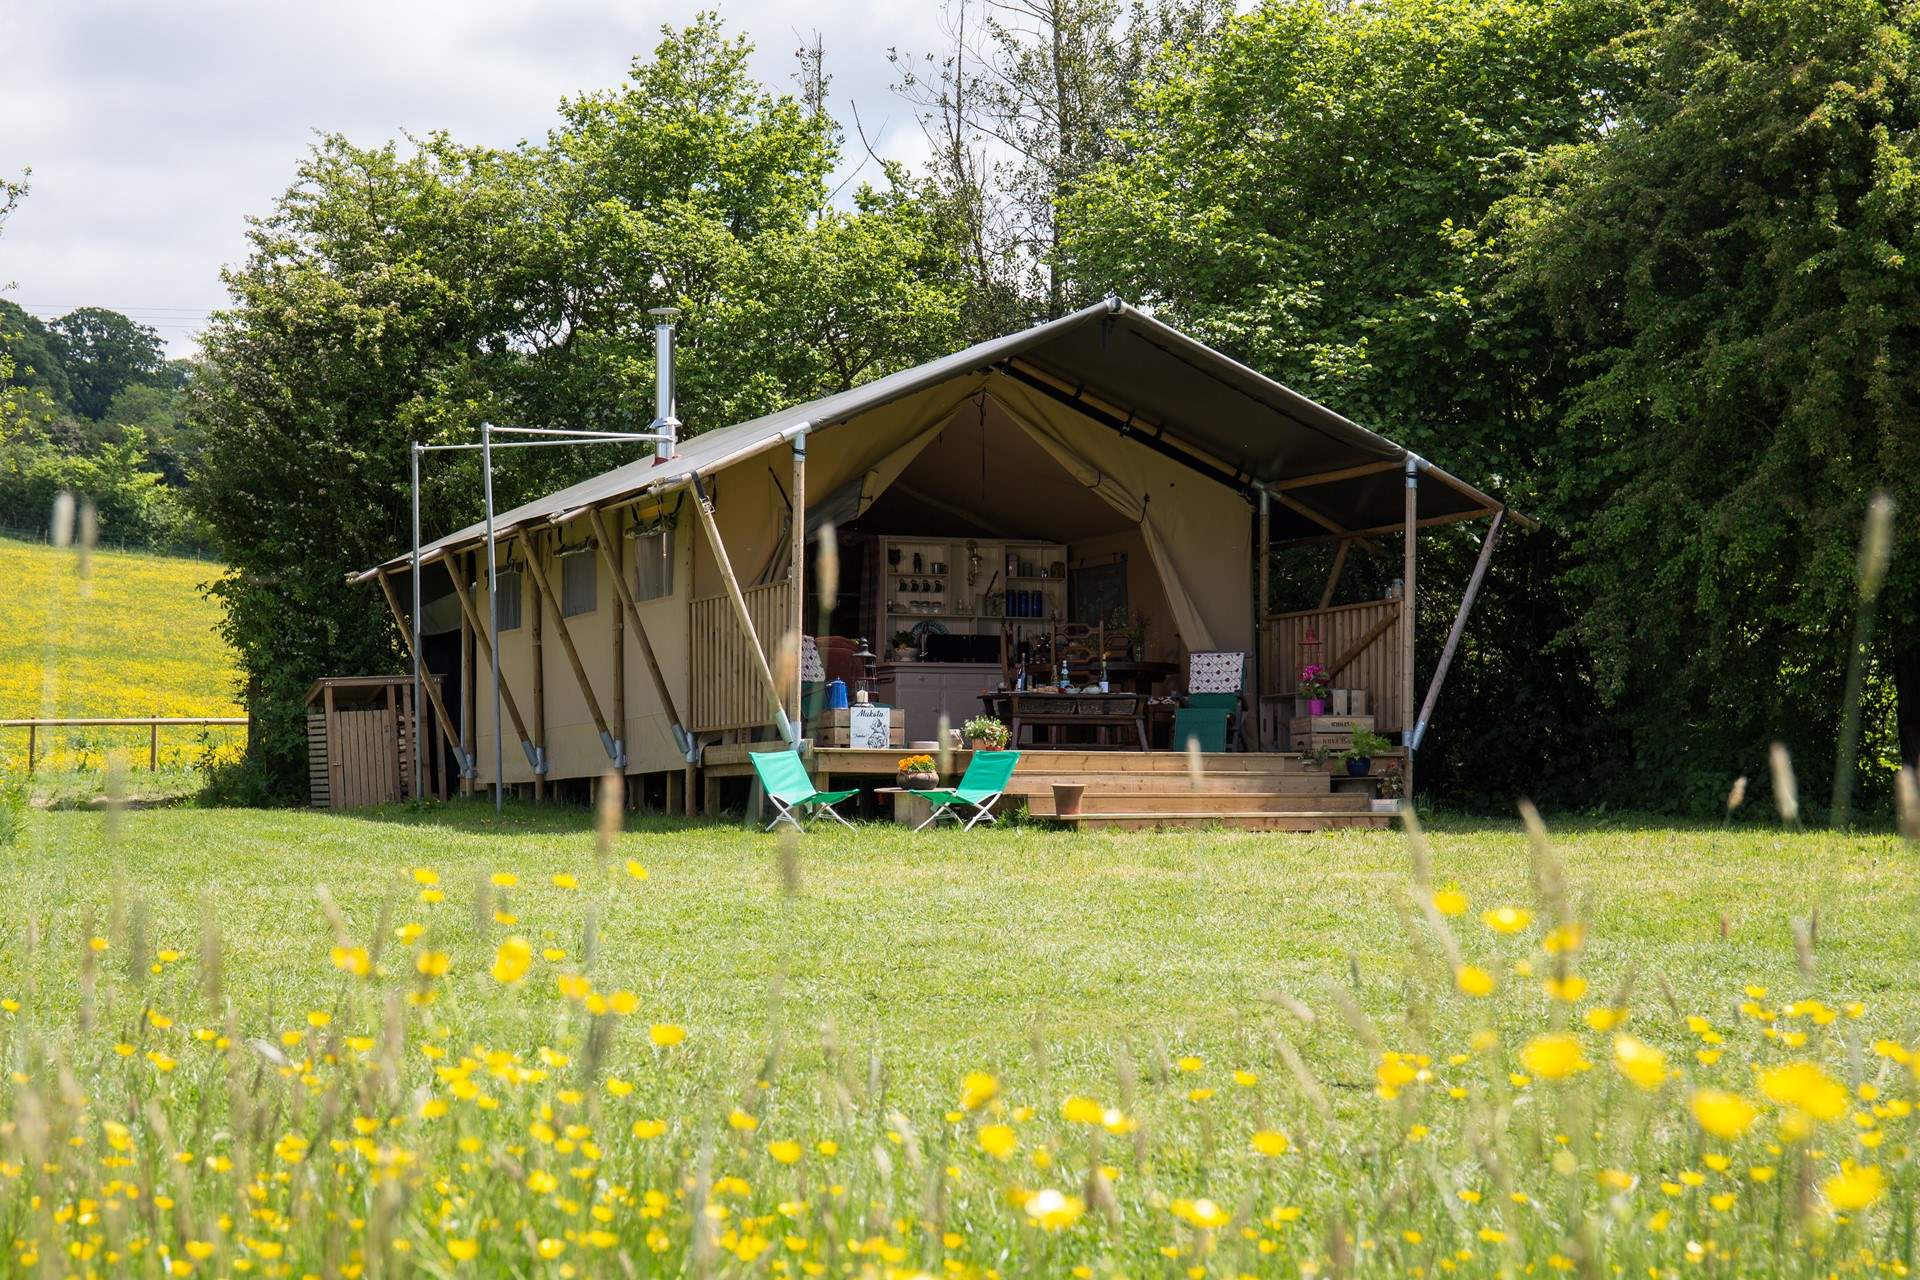 Mukota Safari Tent & Glamping Dorset | Luxury En Suite Safari Tents in Dorset